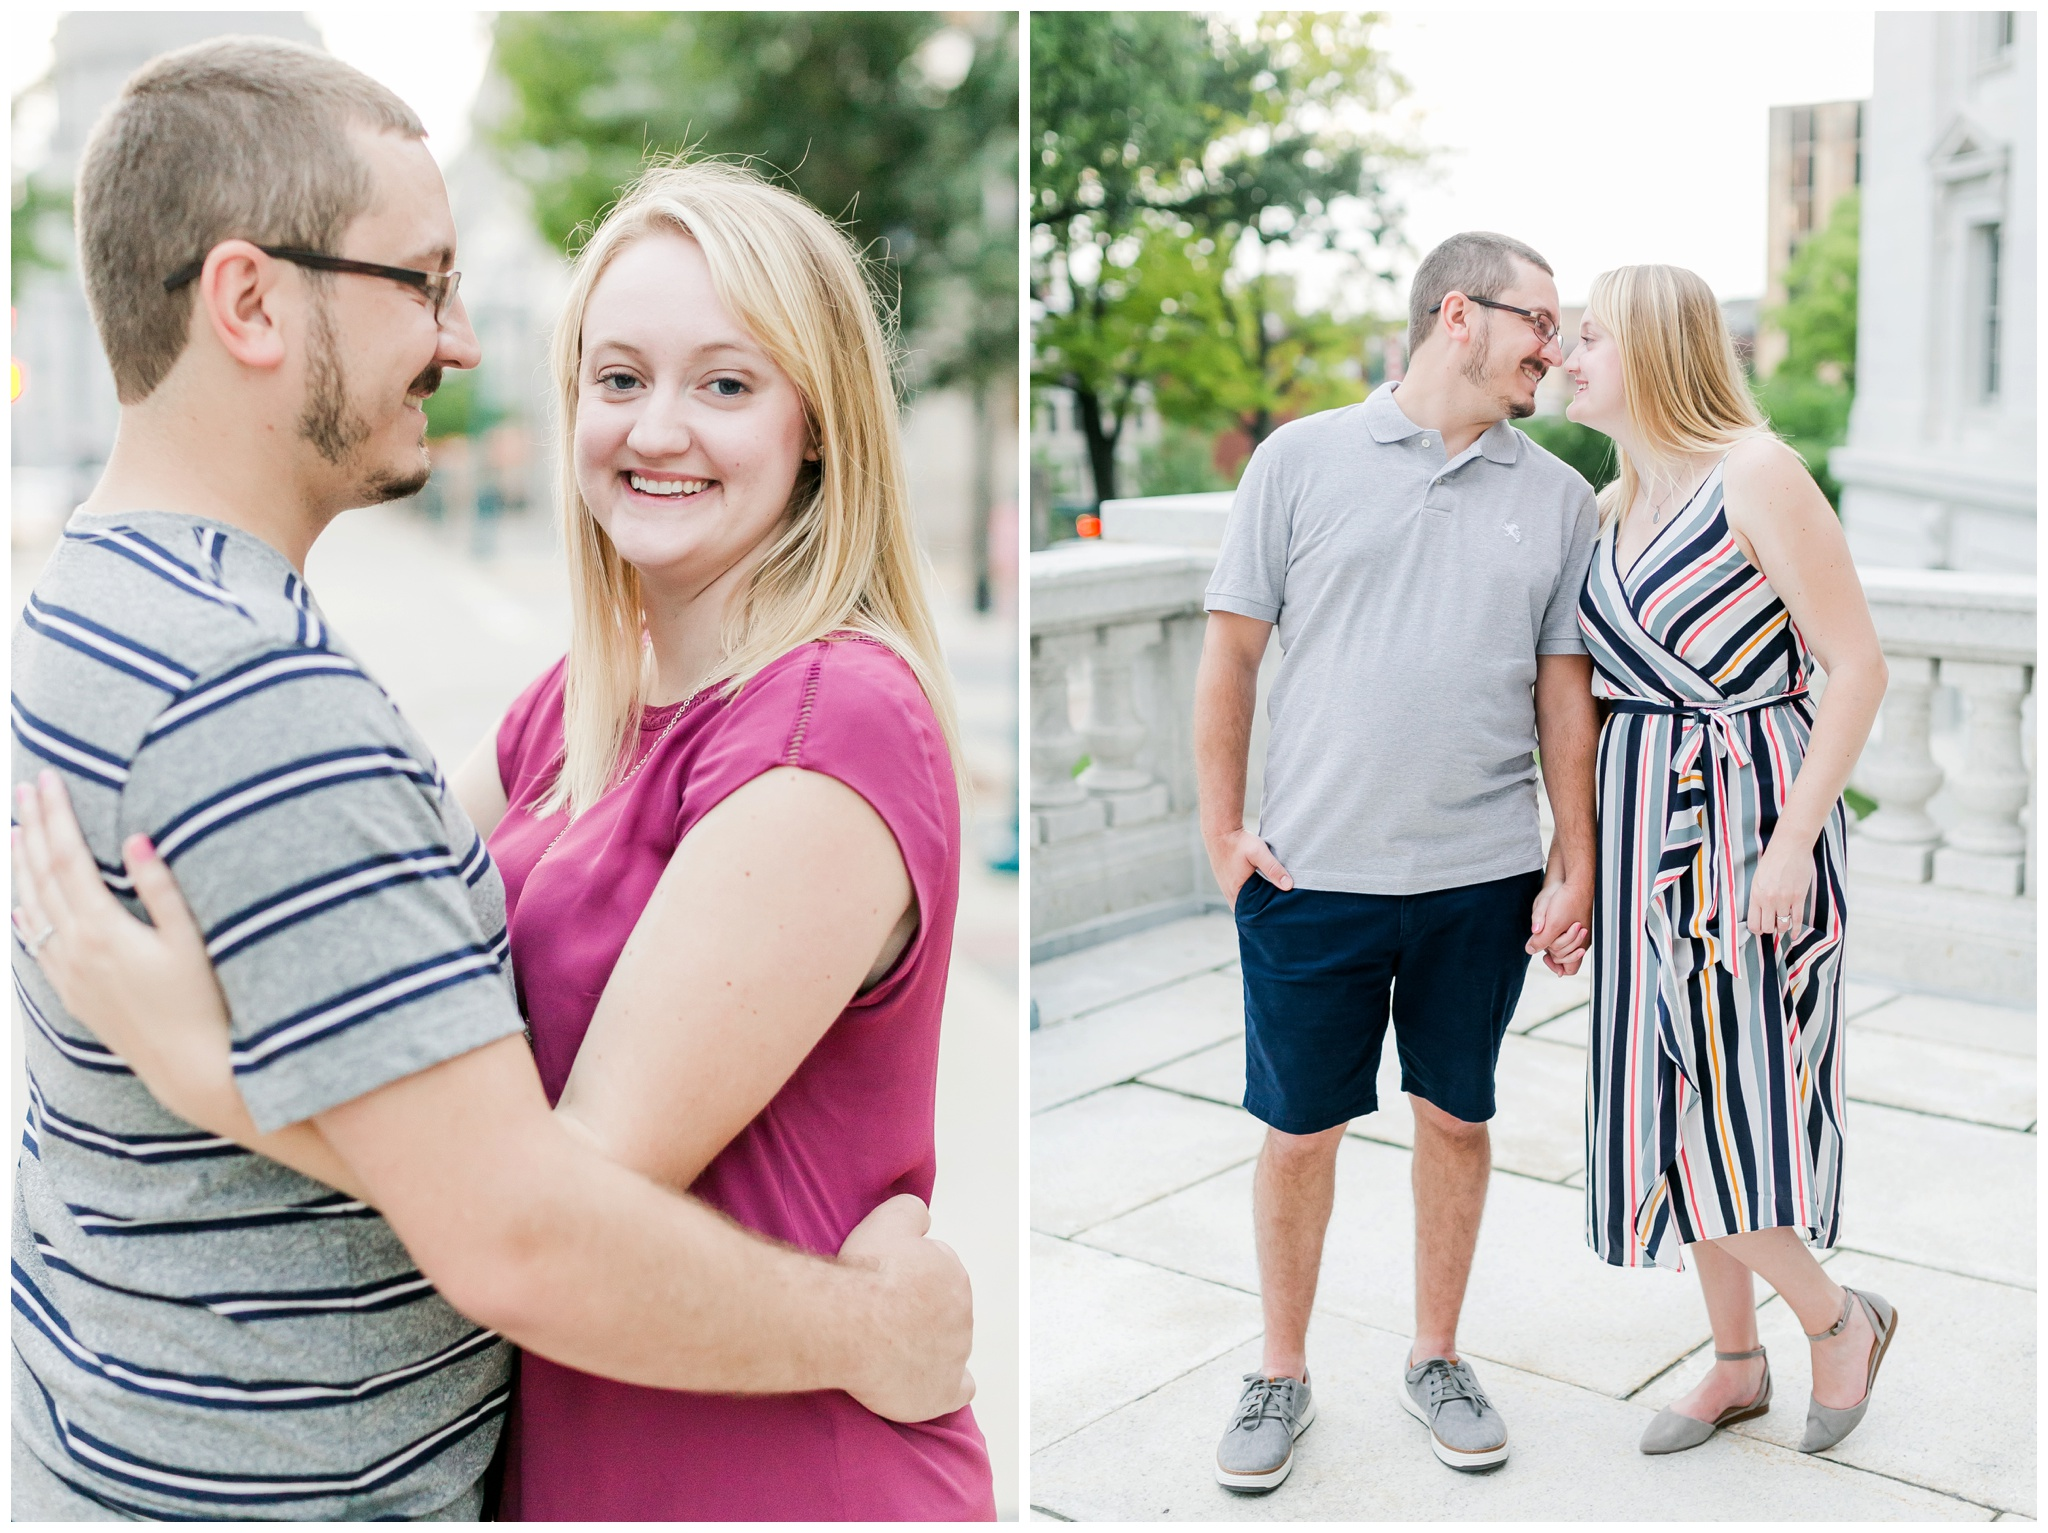 Downtown_madison_wisconsin_engagement_session_4220.jpg